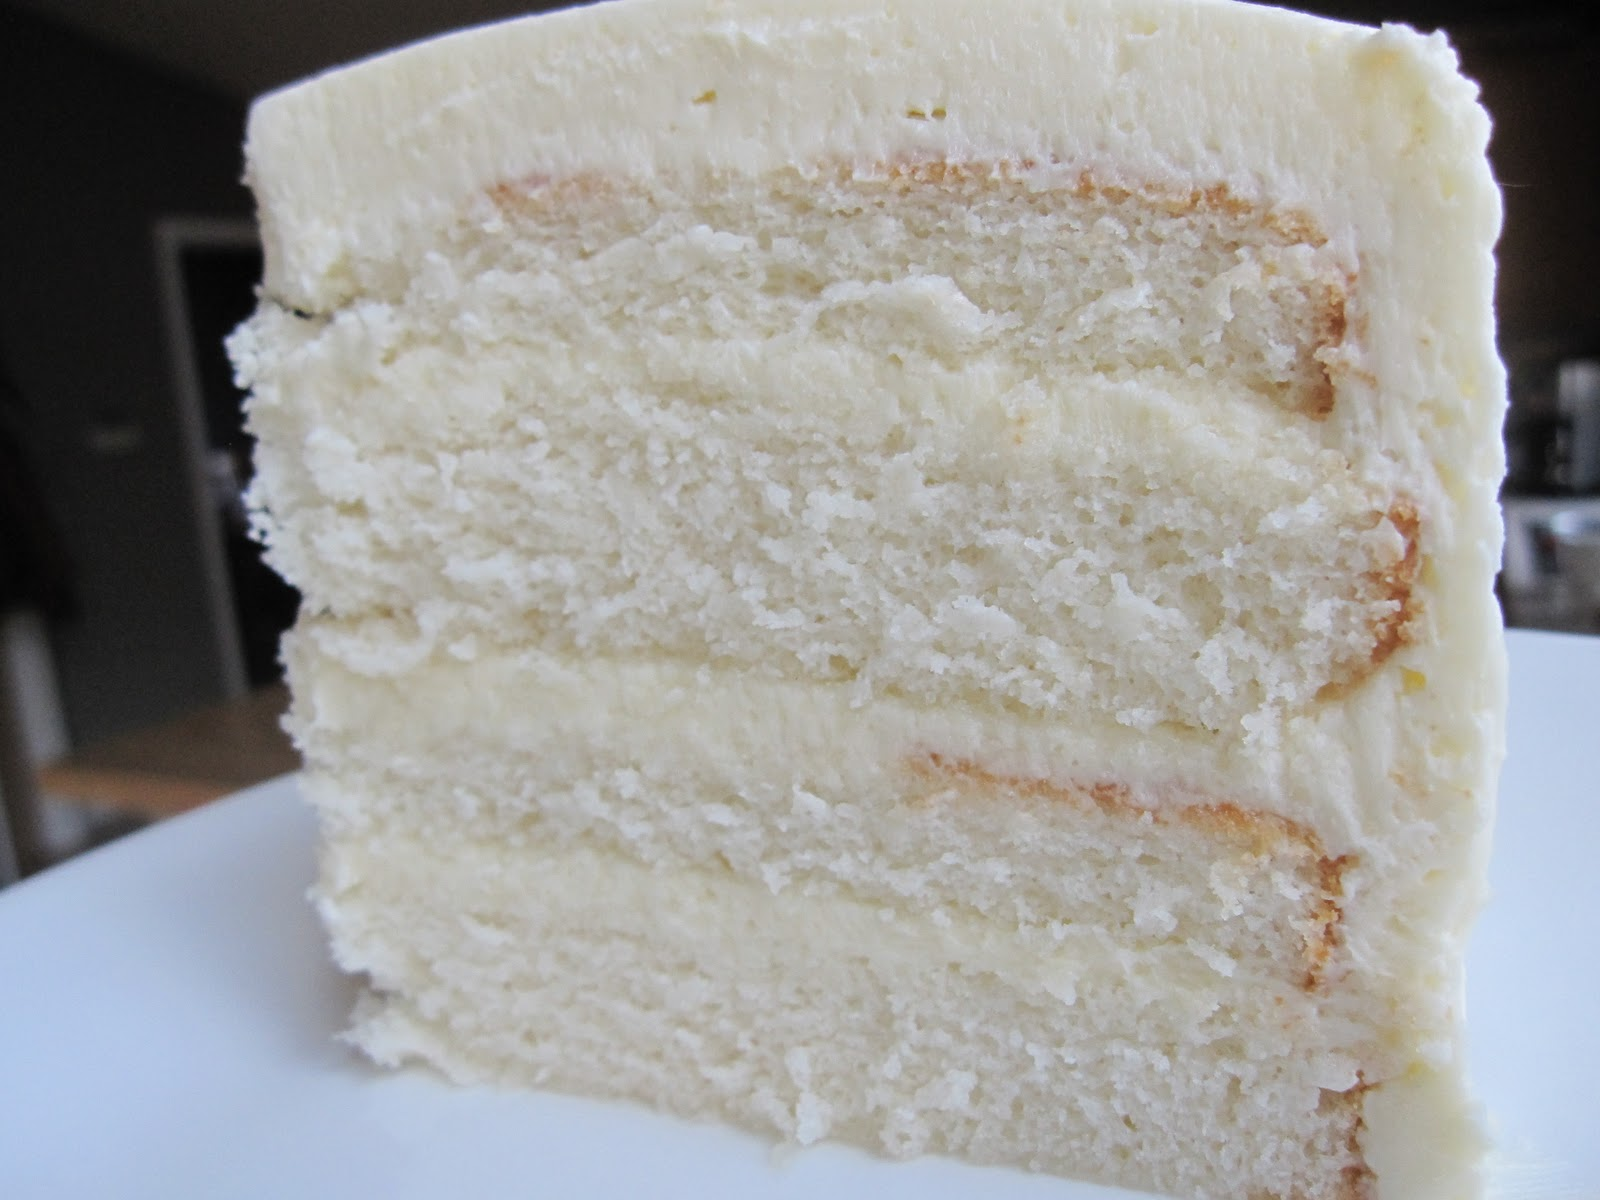 Fanksgiving White Cake